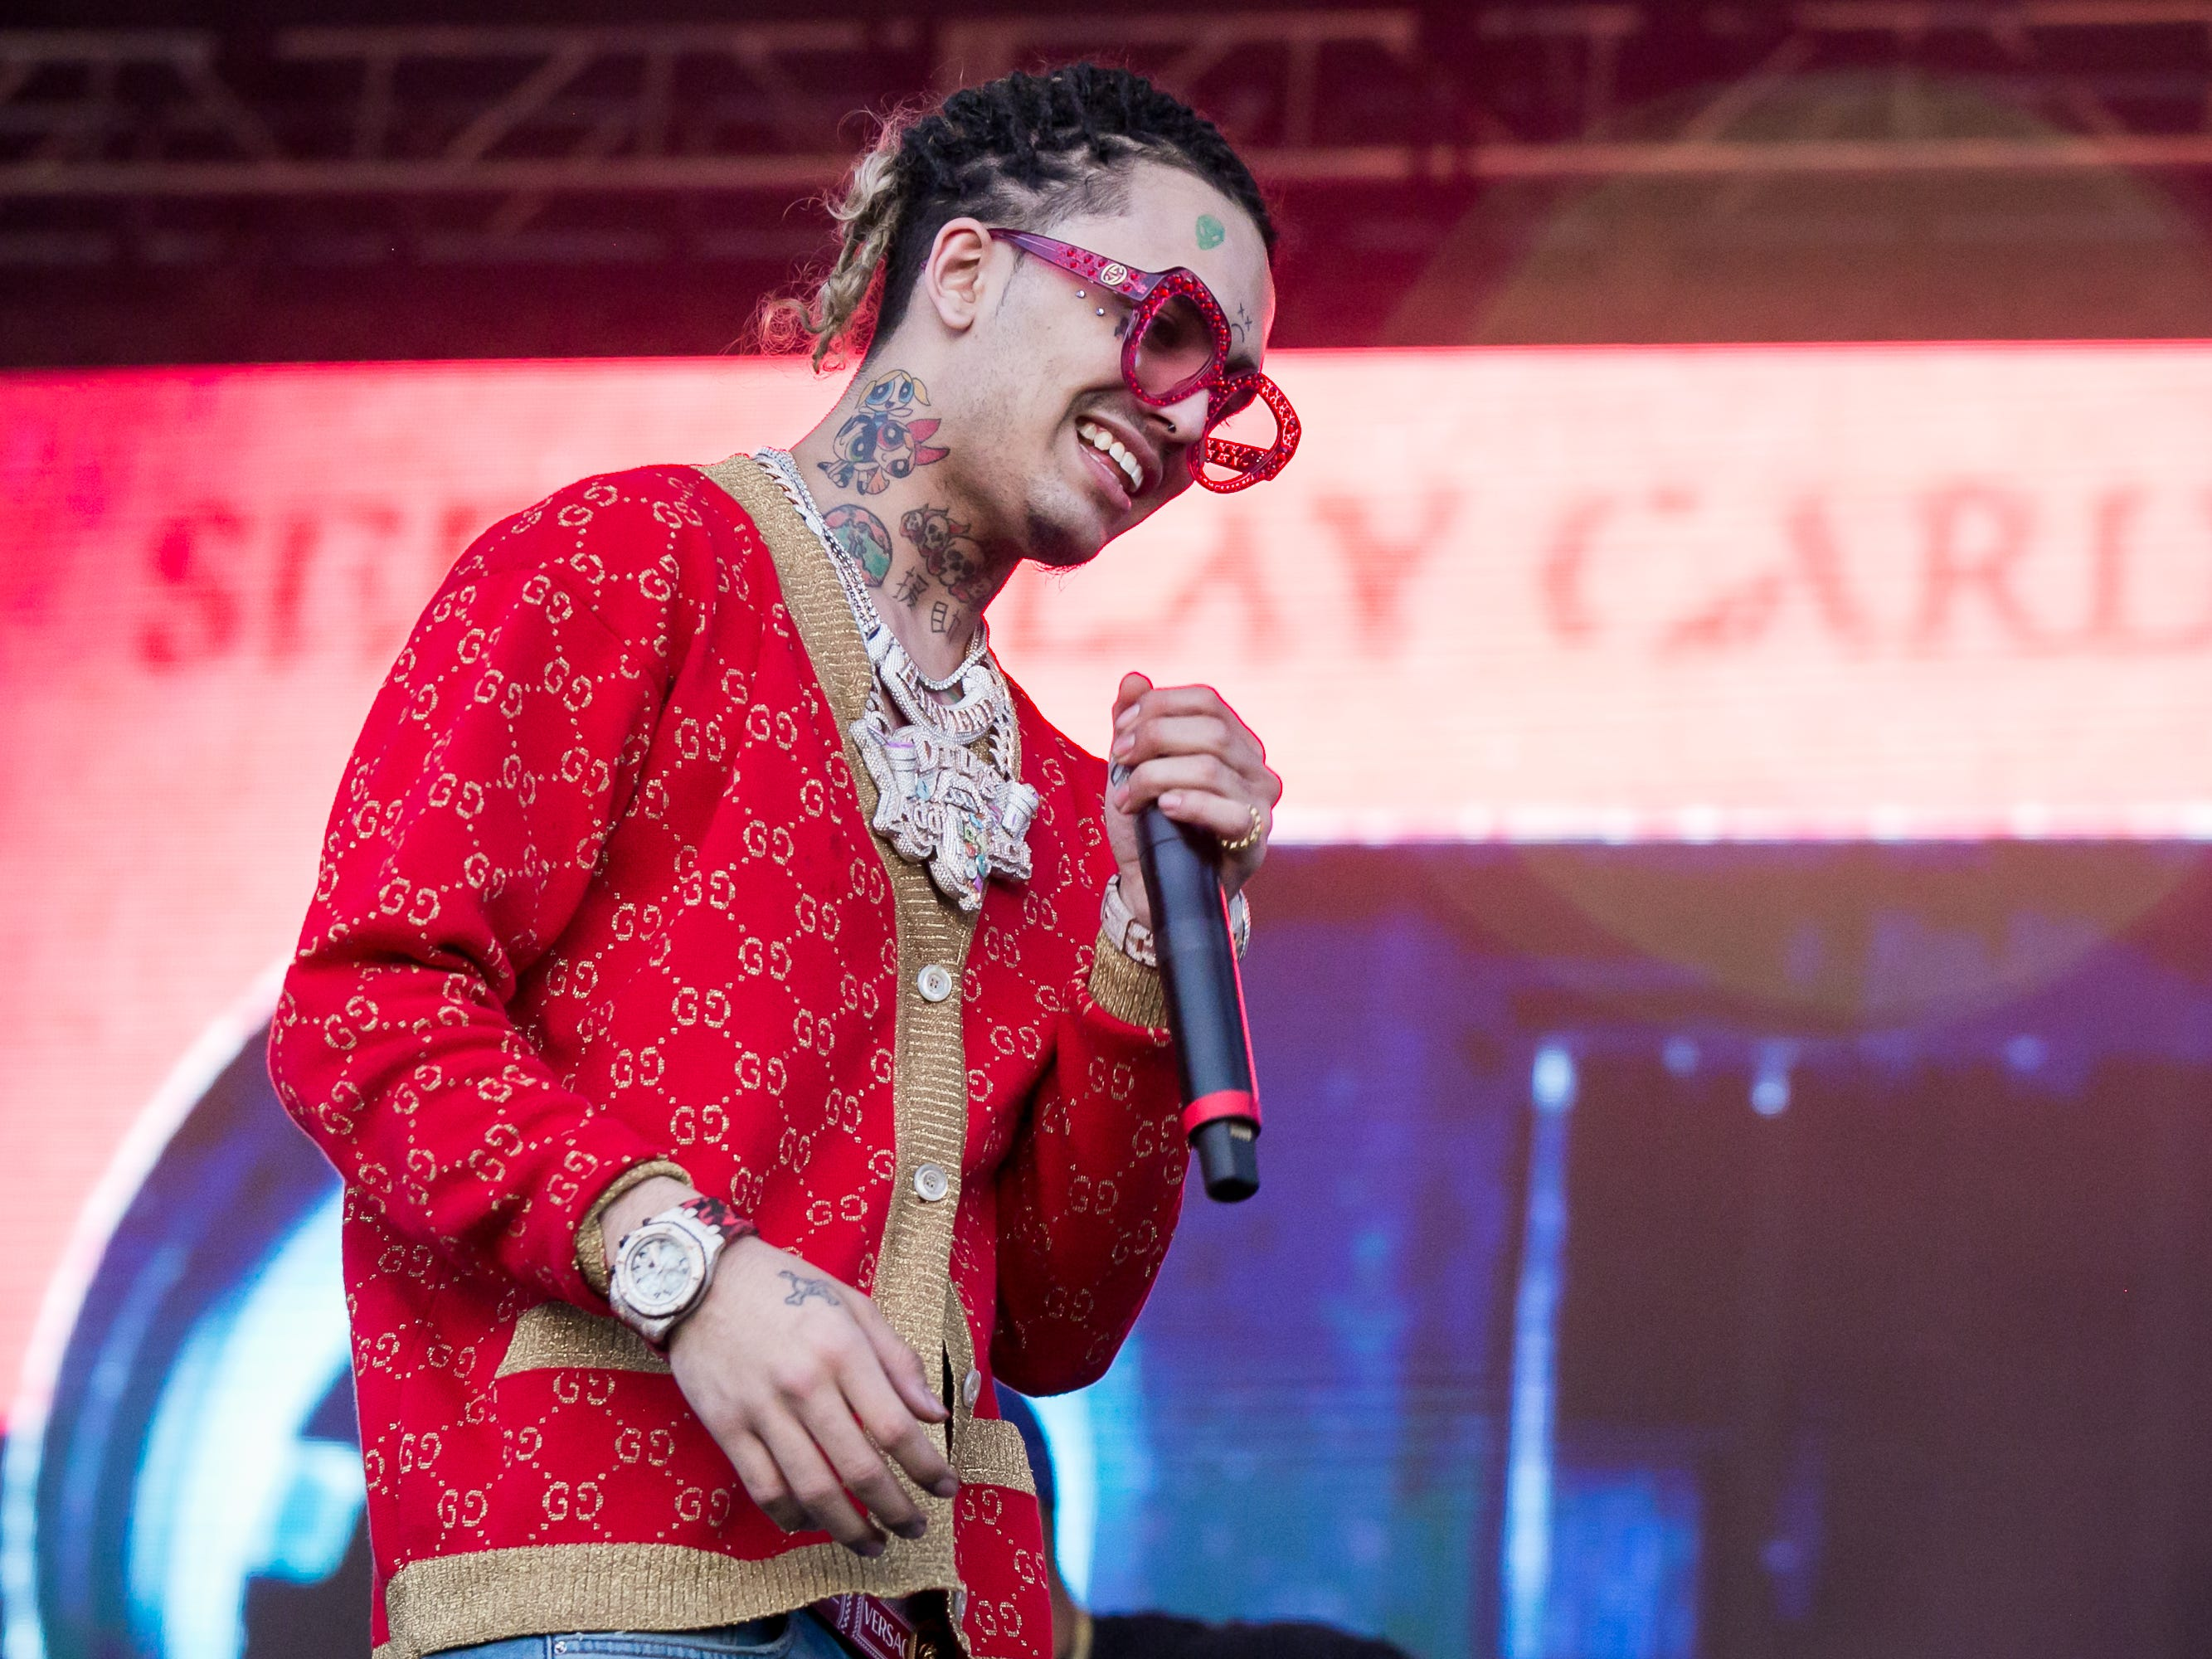 Lil Pump performed at Pot of Gold Music Festival on Sunday, March 17, 2019.